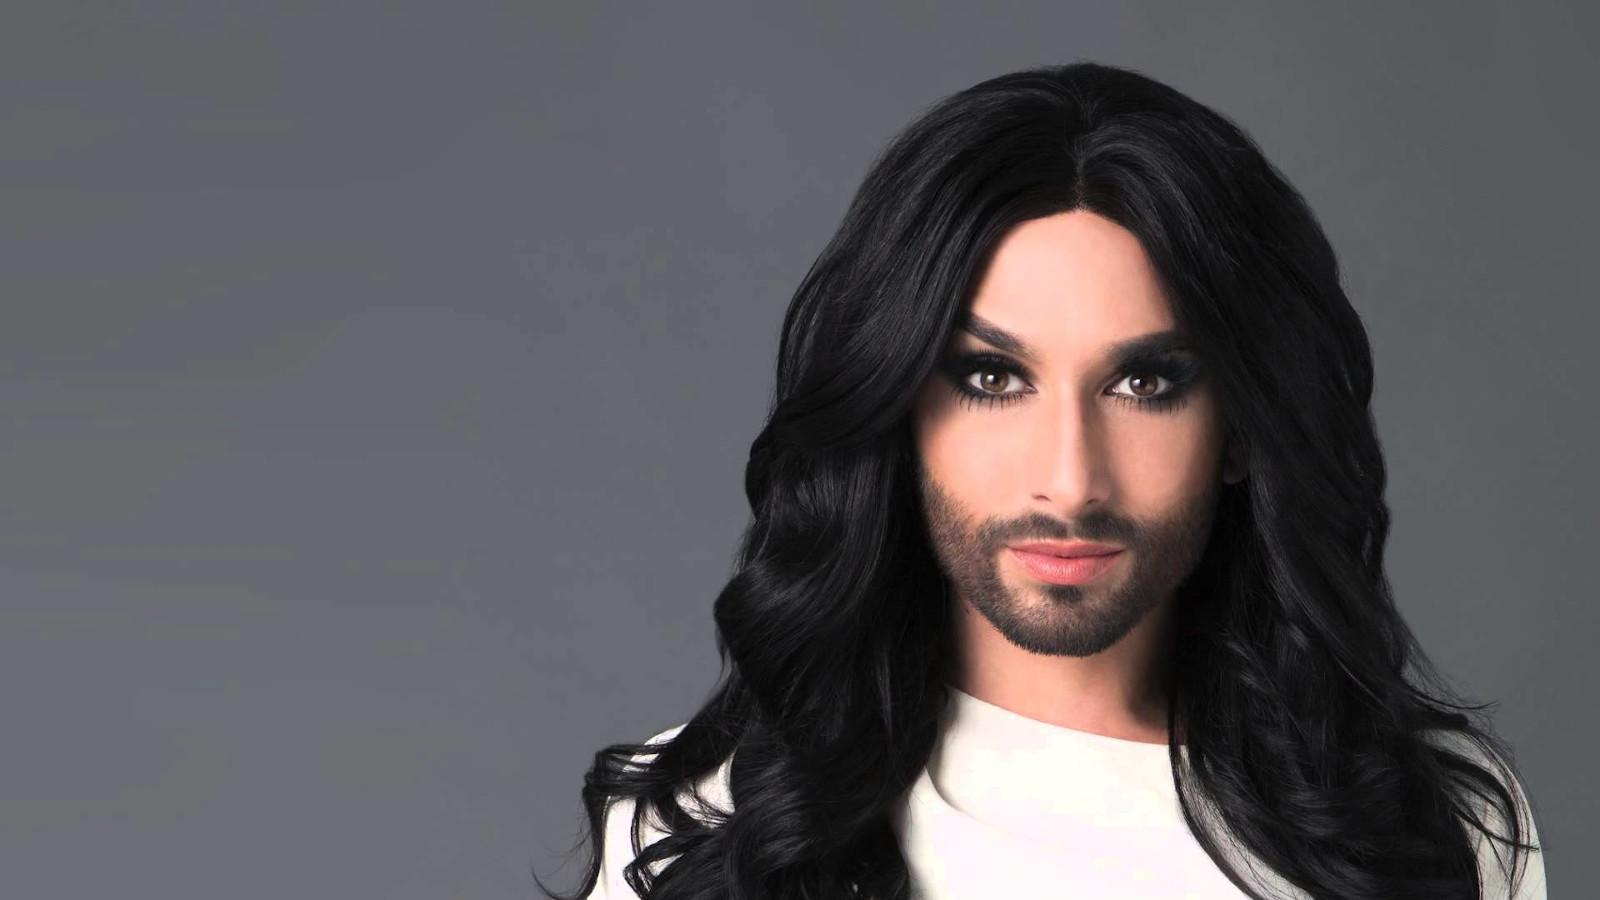 Conchita Wurst a gay icon fighting for LGBT rights